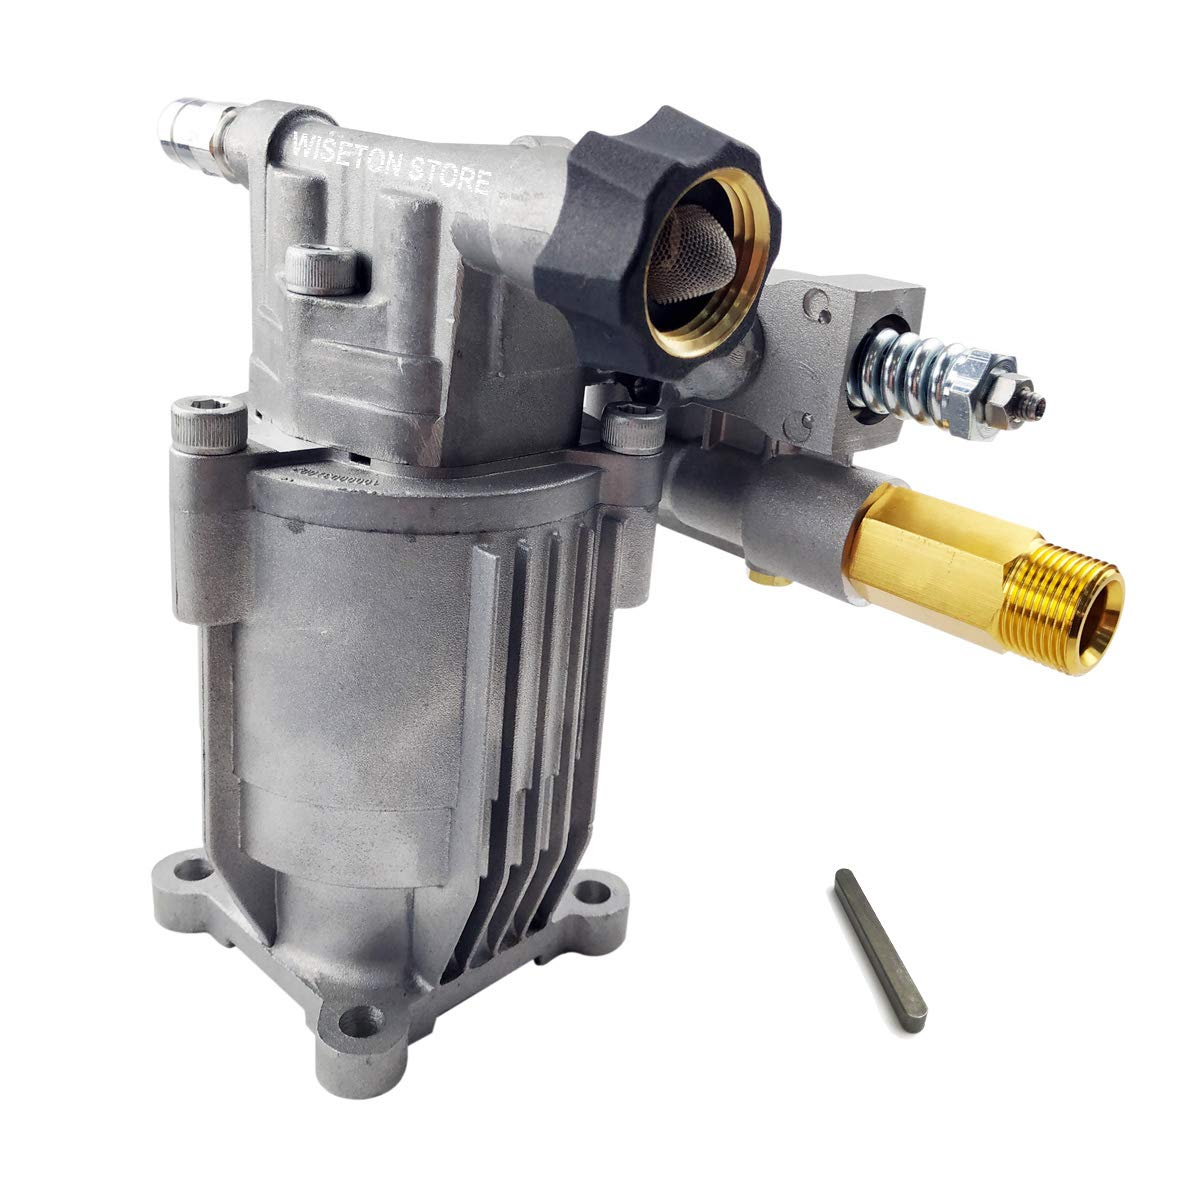 Pressure Washer Replacement Pump 2800 Psi 2.5GPM Gasoline Power Washer Pump - Horizontal Pump with 3/4'' Shaft  M22 Connectors Include Keyway by WISETON STORE